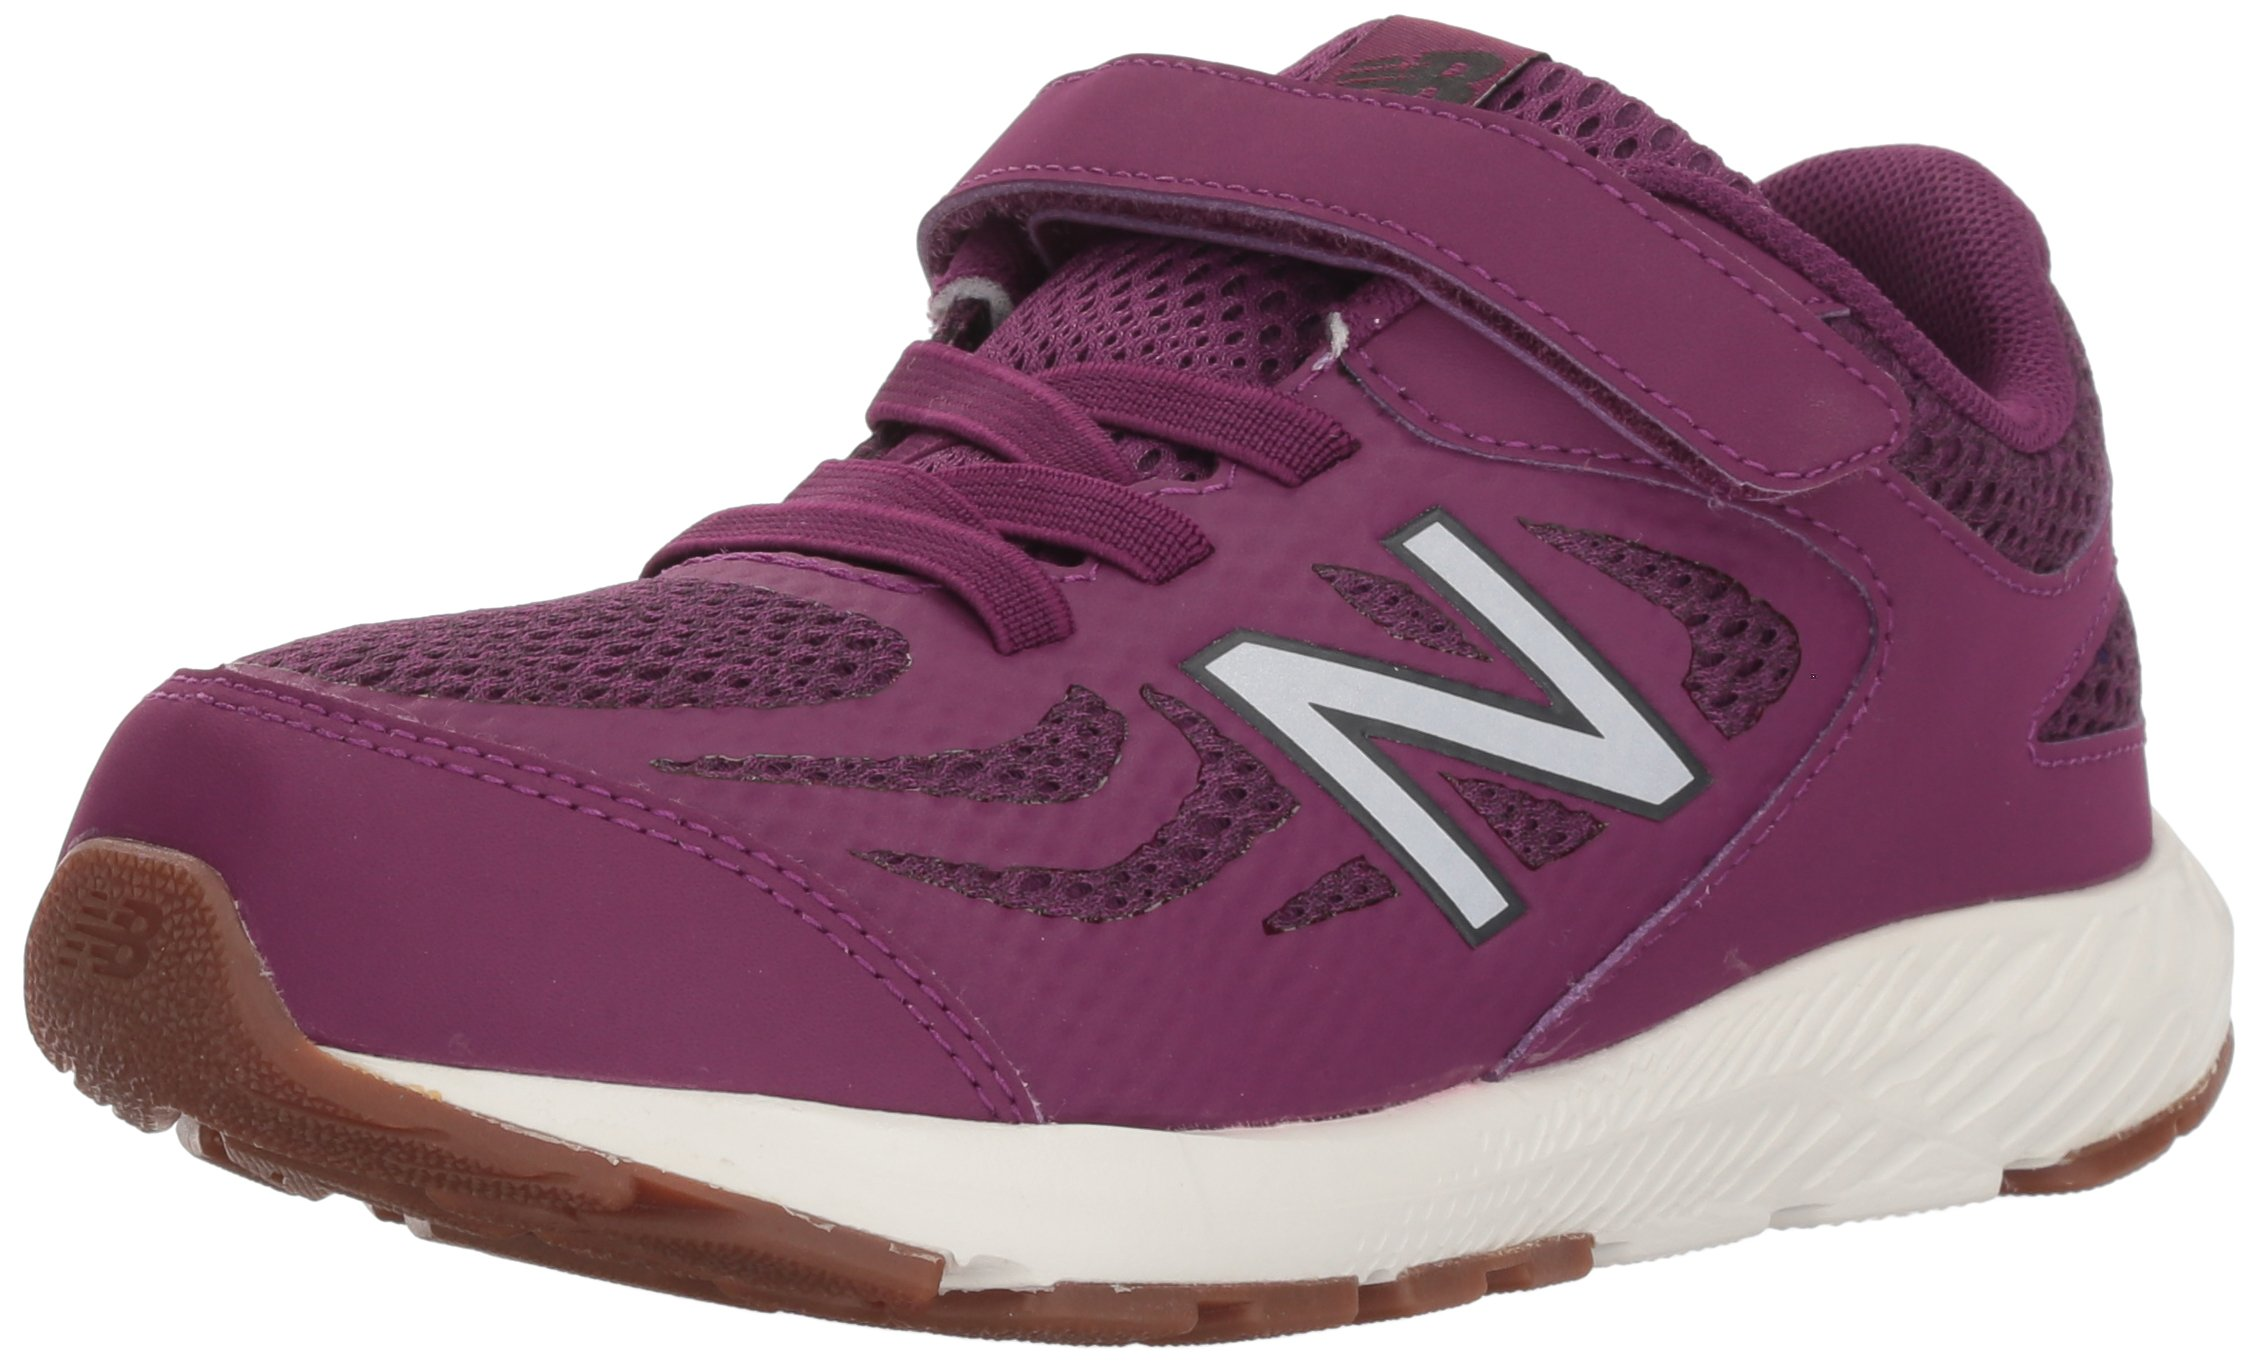 New Balance Girls' 519v1 Hook and Loop Running Shoe, Imperial/Phantom, 2 M US Infant